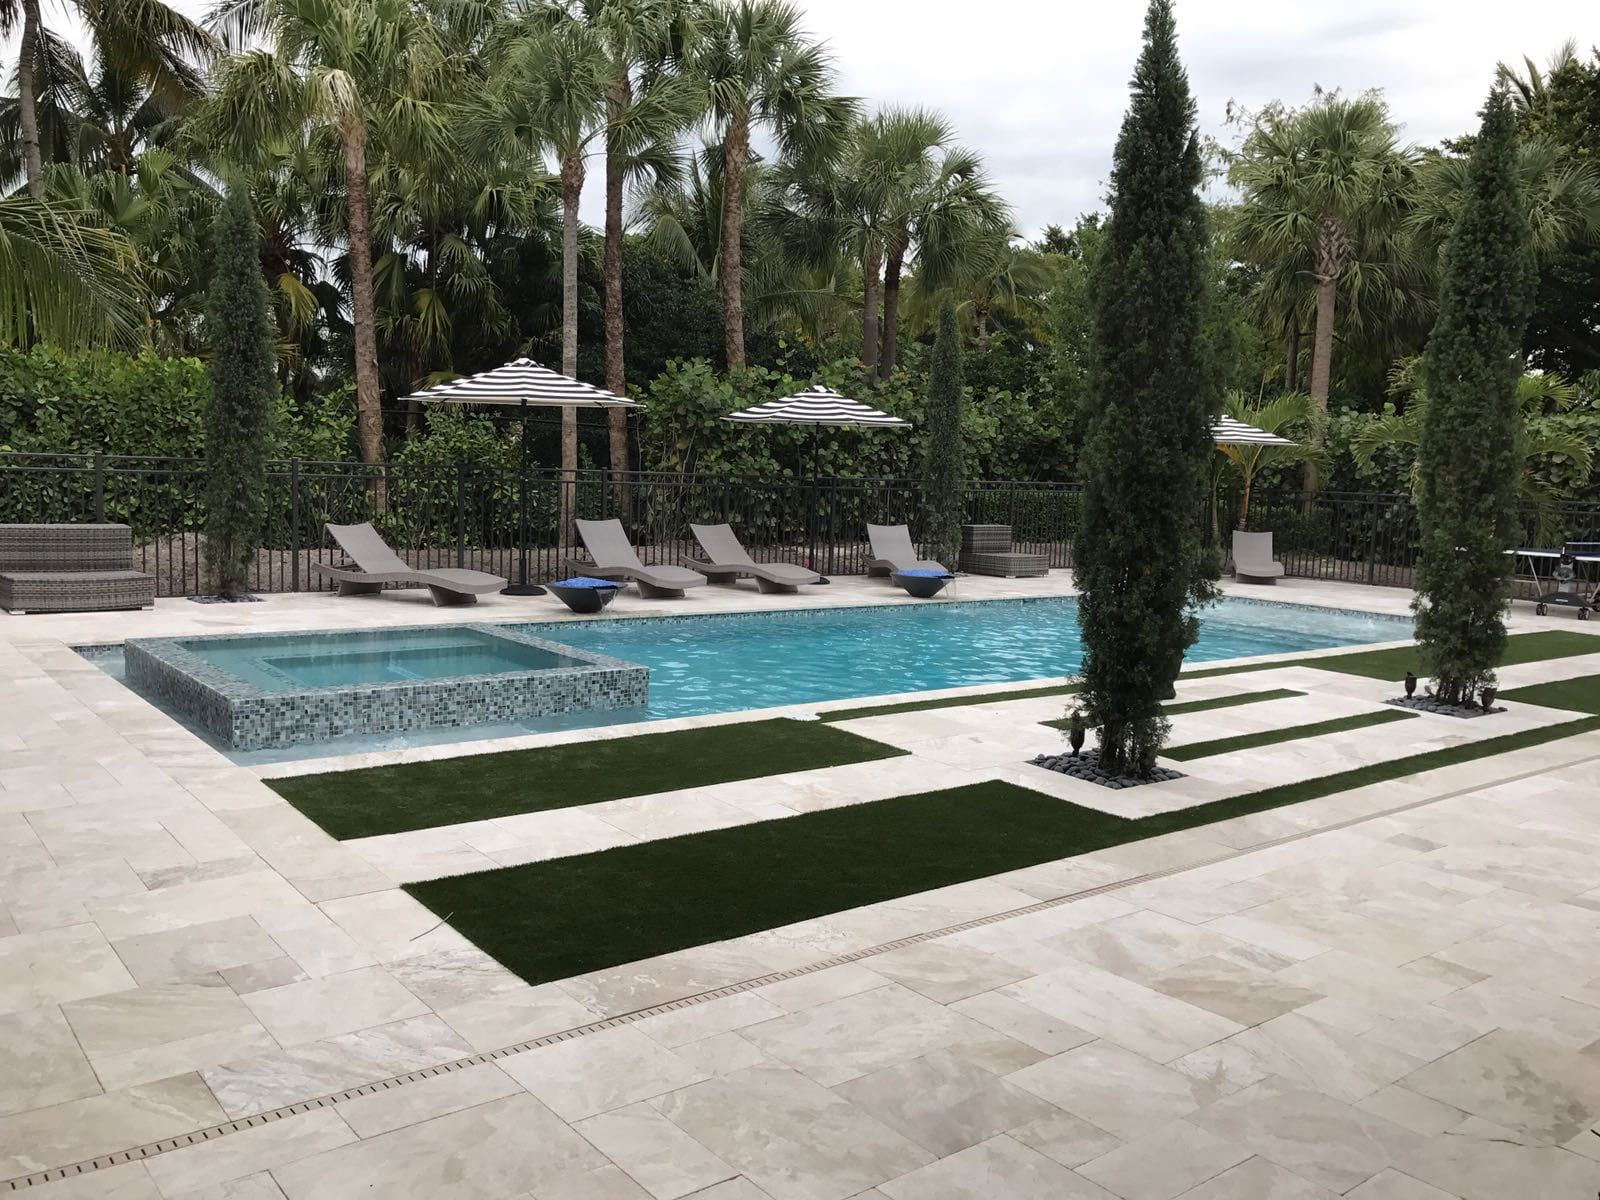 Stoneline-Group-Fantastic-Royal-Marble-Collection-Marble-Tumbled-paver-Patio-walkway-Pool-deck-backyards-marble-design-Pictures